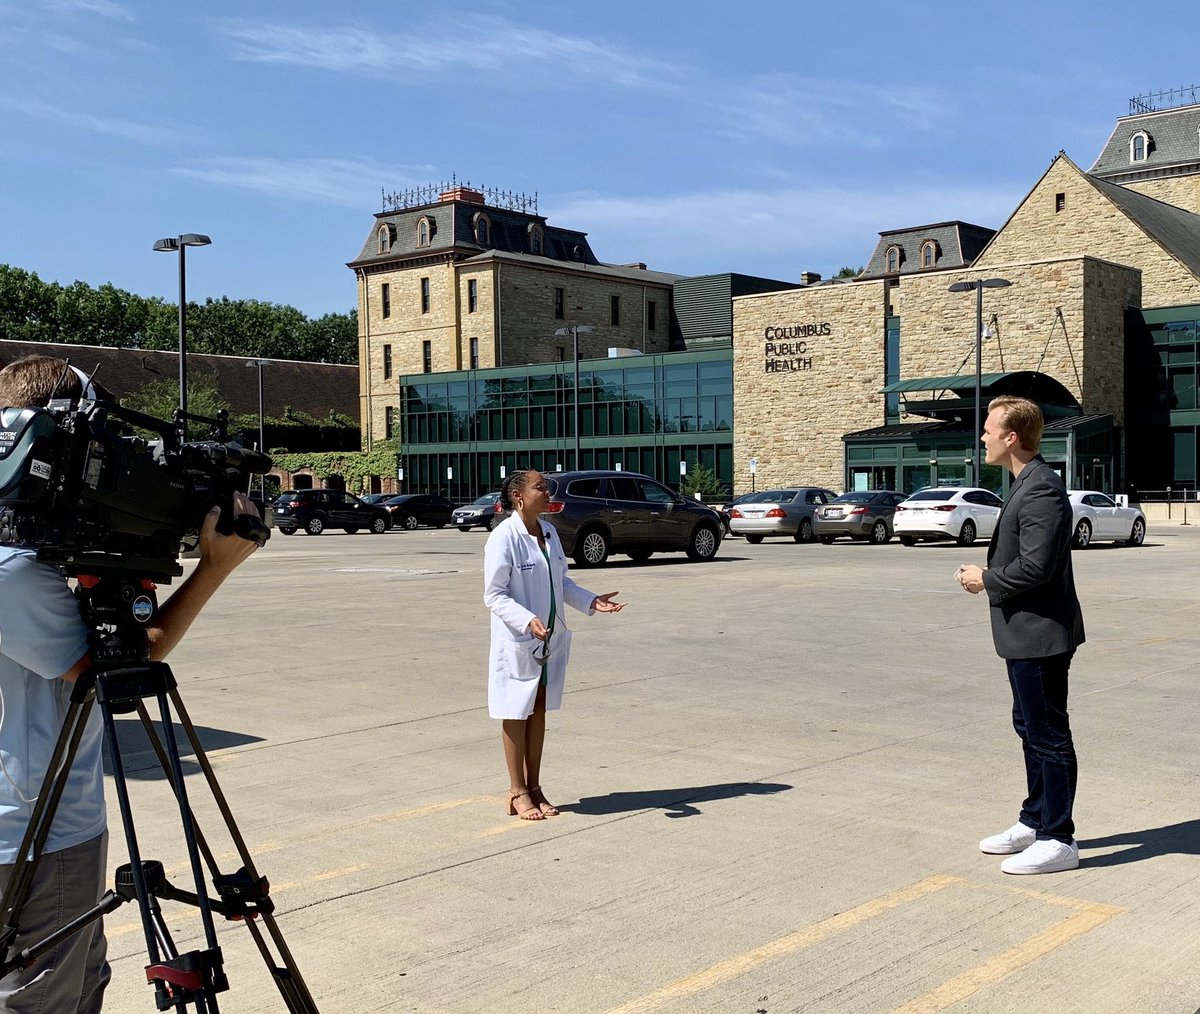 Health Commissioner @DrMRoberts spoke with @CameronFontana today about preventing overdose deaths with naloxone. You can now order free naloxone by mail by visiting